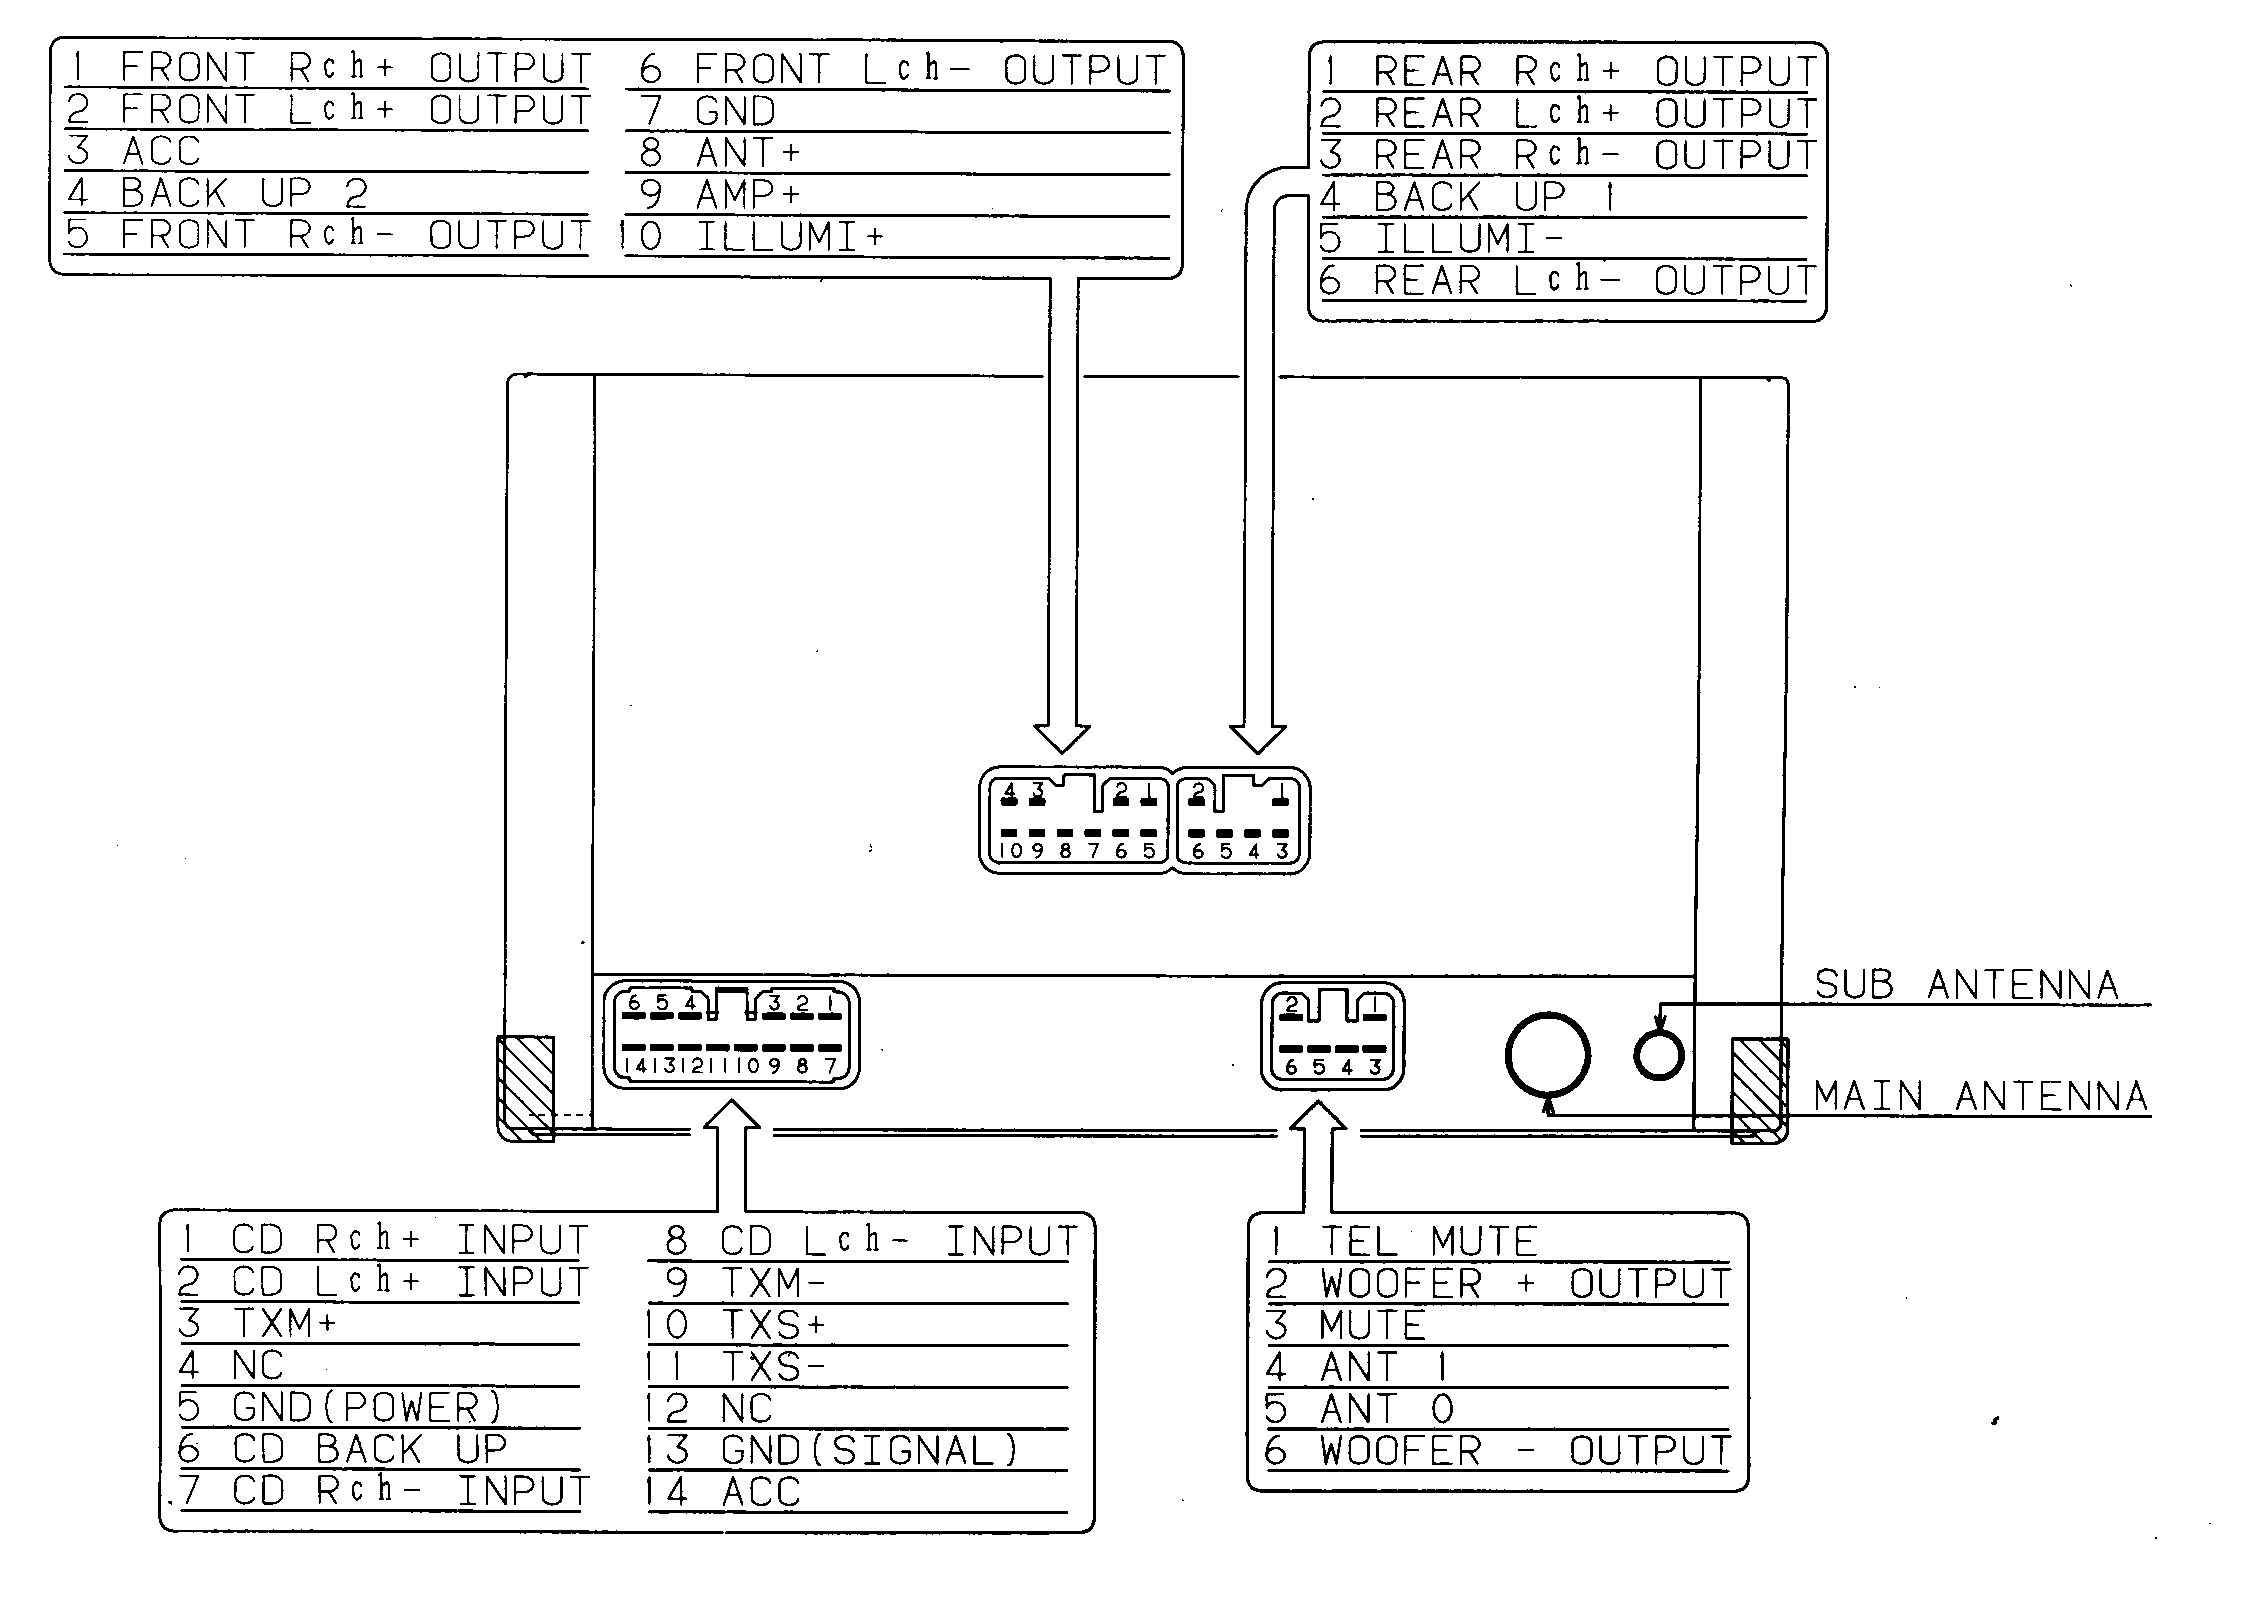 mitsubishi audio wiring diagram mitsubishi wiring diagrams wireharnesslexus121001 mitsubishi audio wiring diagram